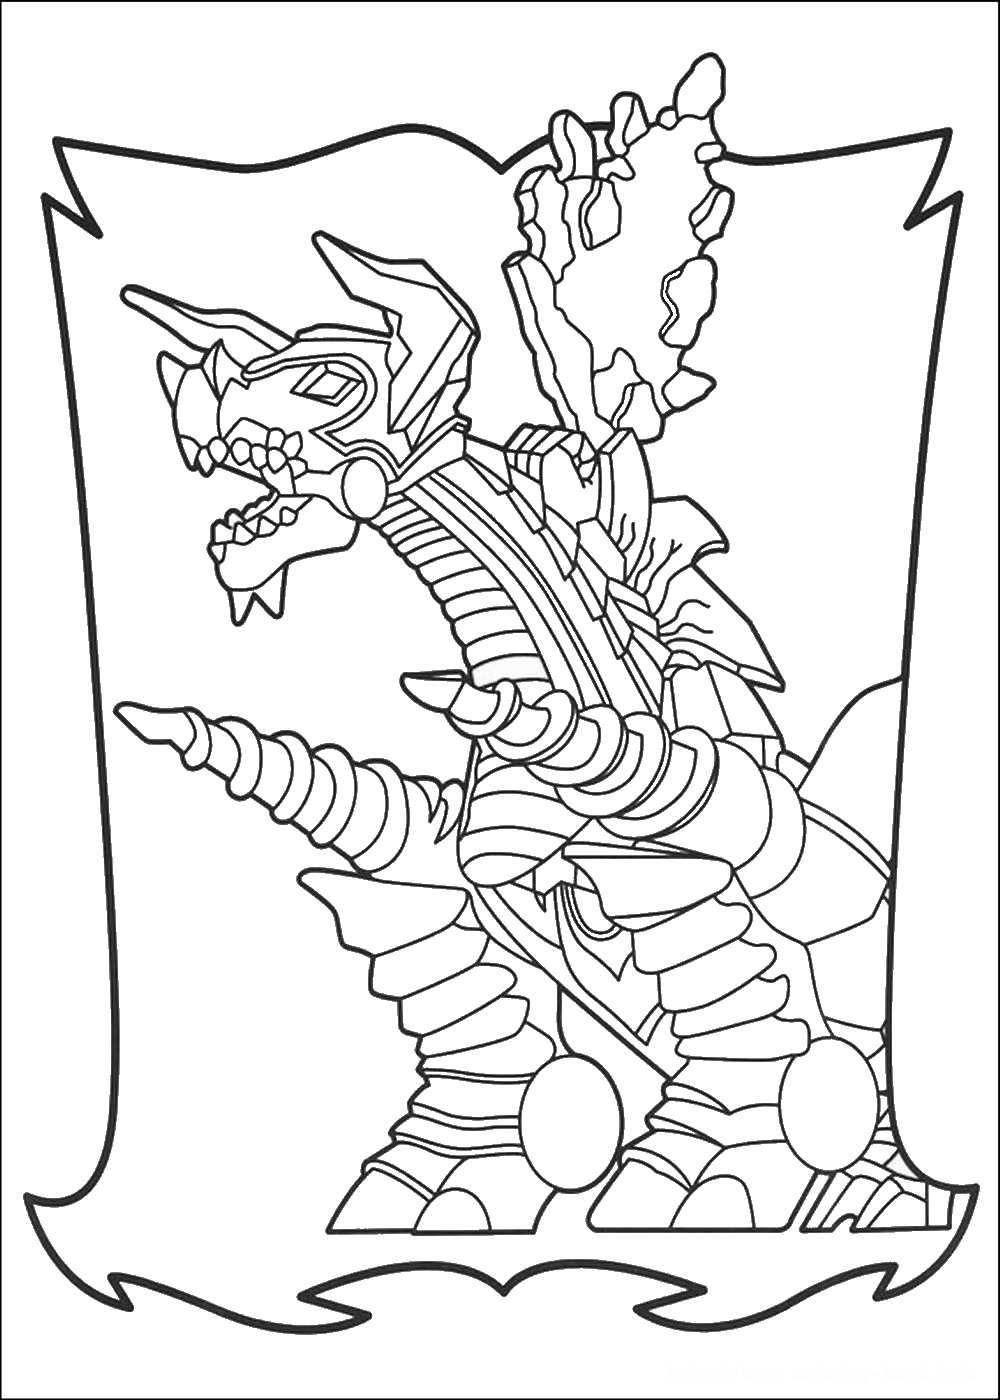 power ranger color pages power ranger coloring pages ranger pages color power